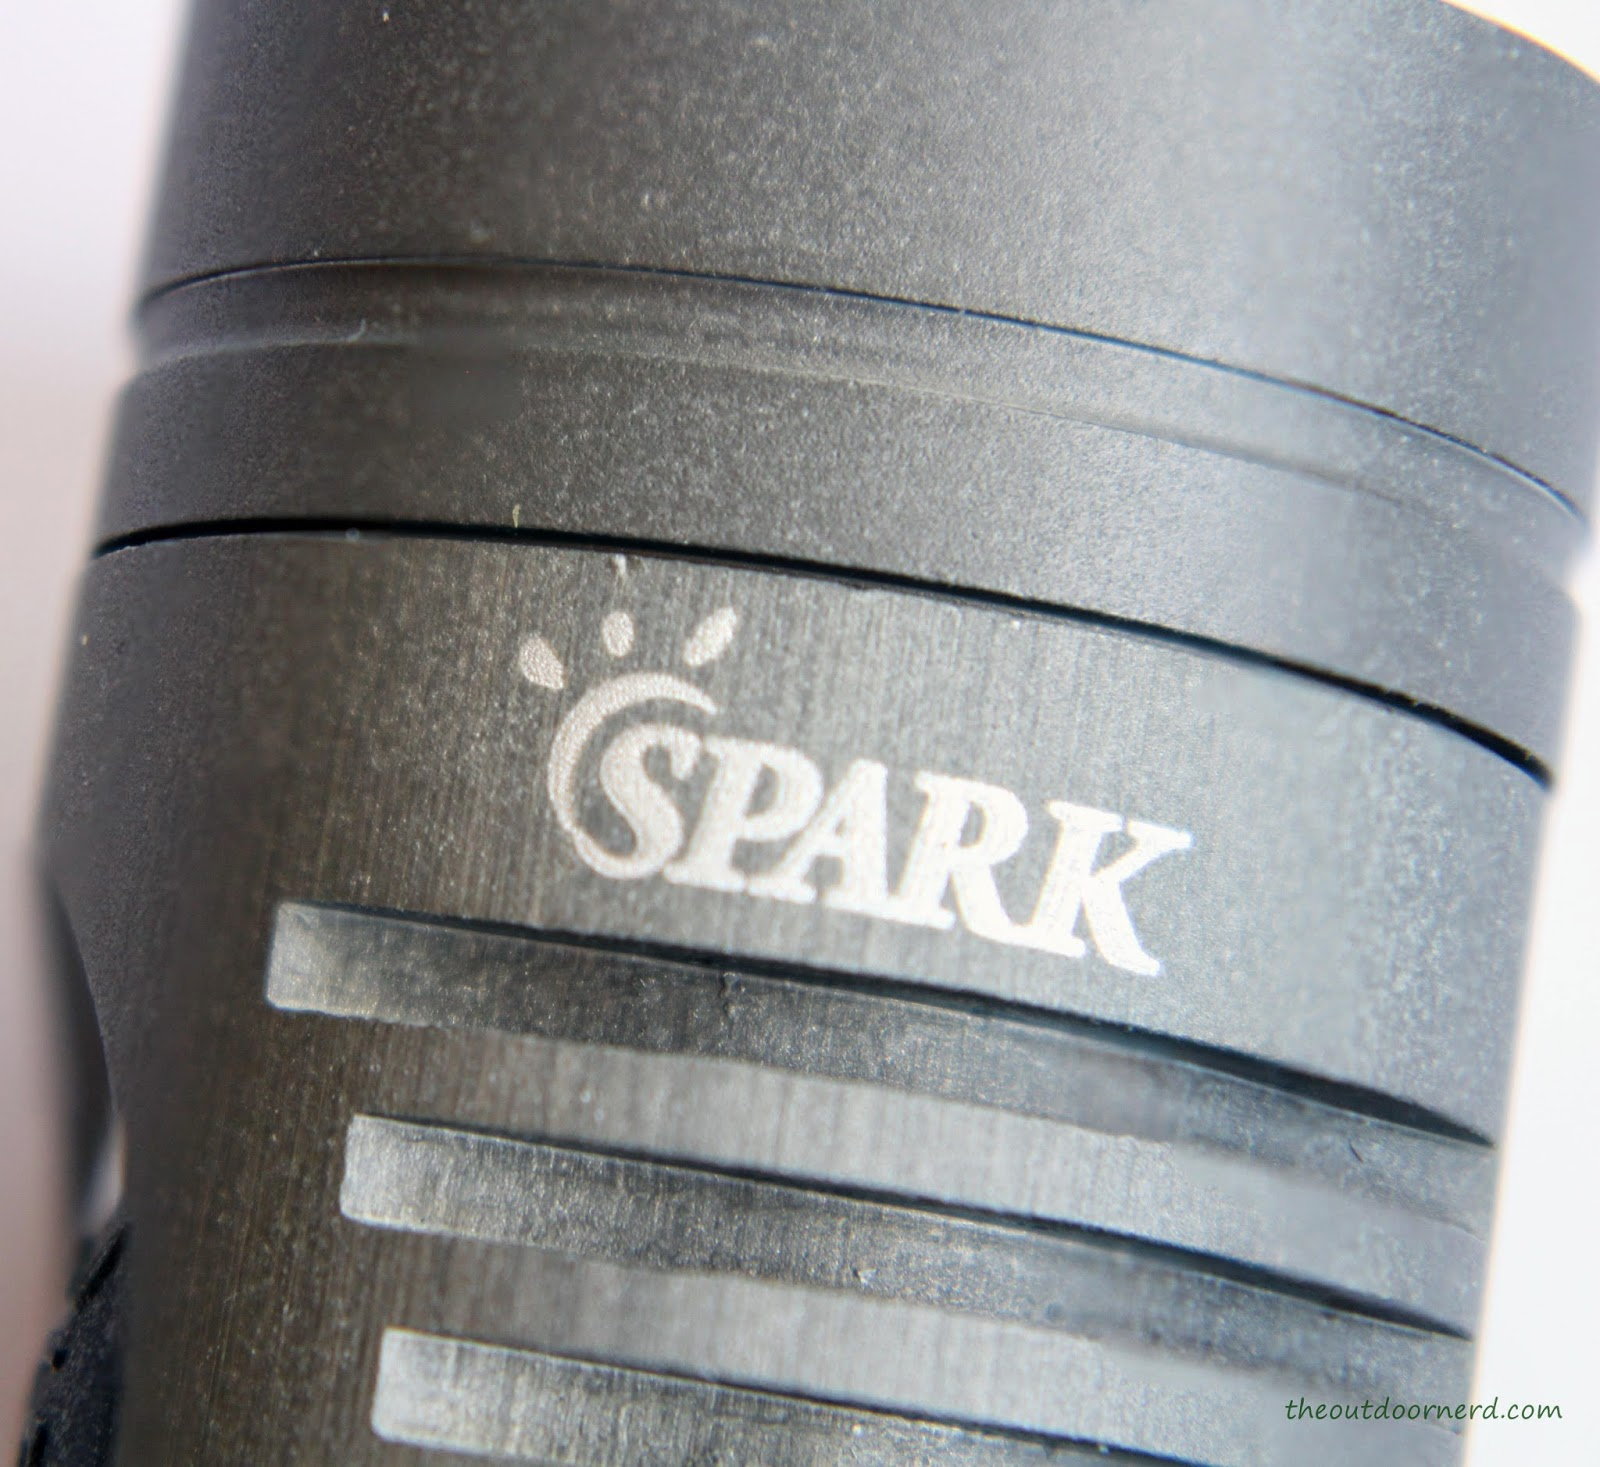 Spark SF3 1xCR123A Flashlight - Closeup Of Spark Logo